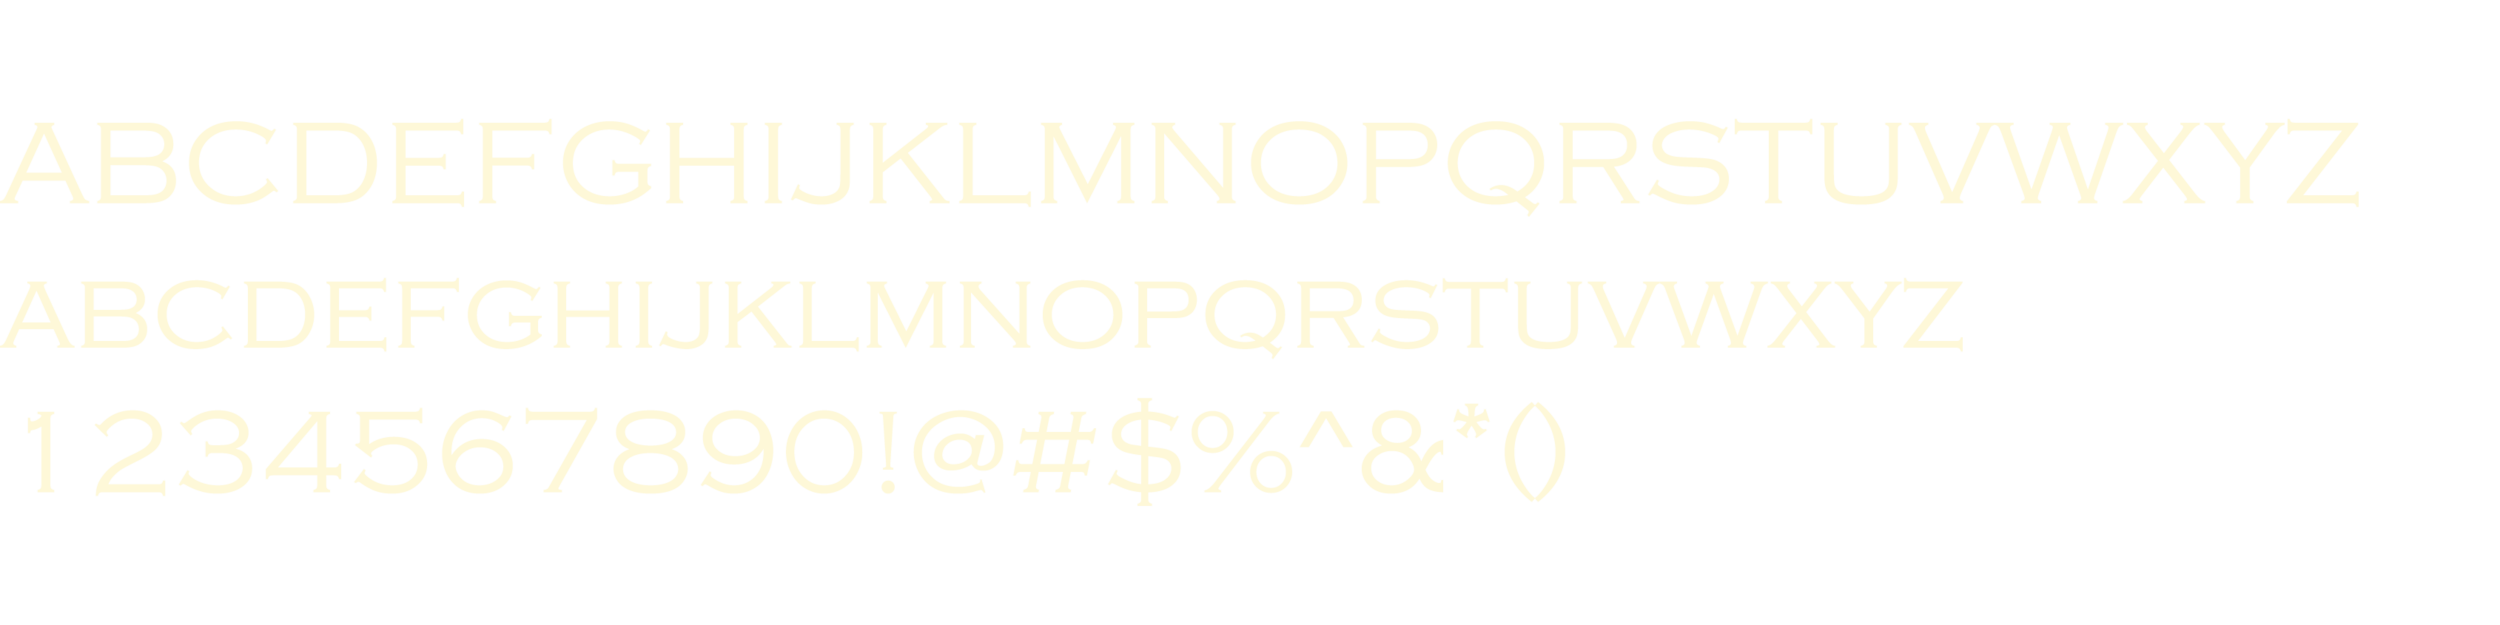 Copperplate Gothic Light